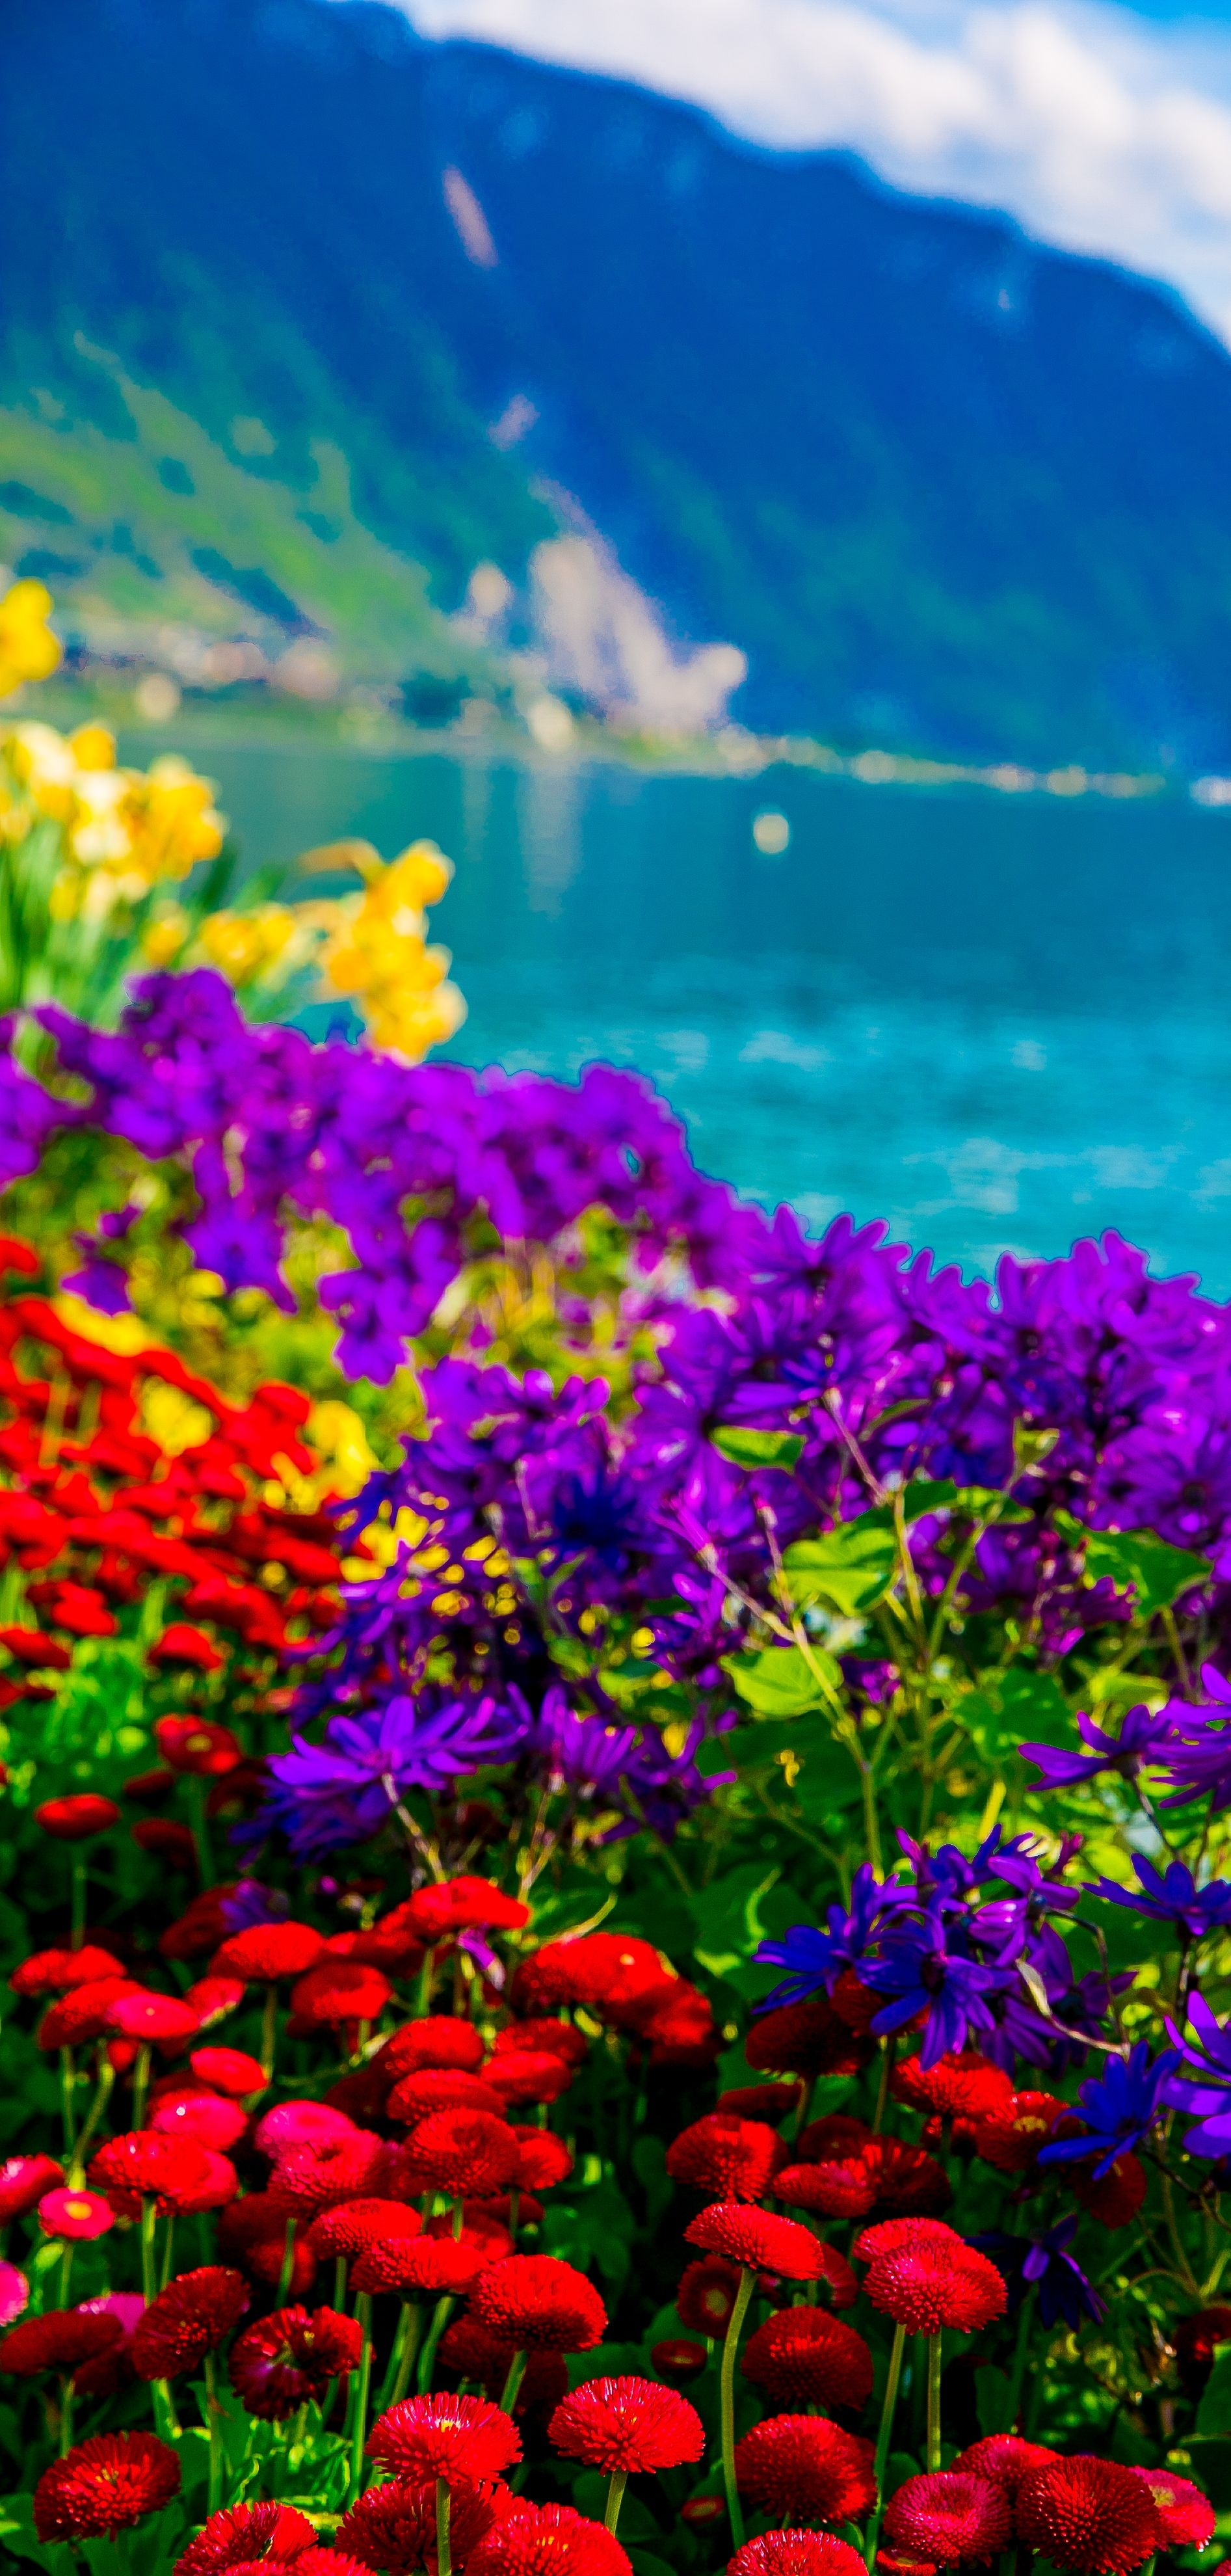 Flowers on Lake Geneva, with Swiss Alps, Montreux